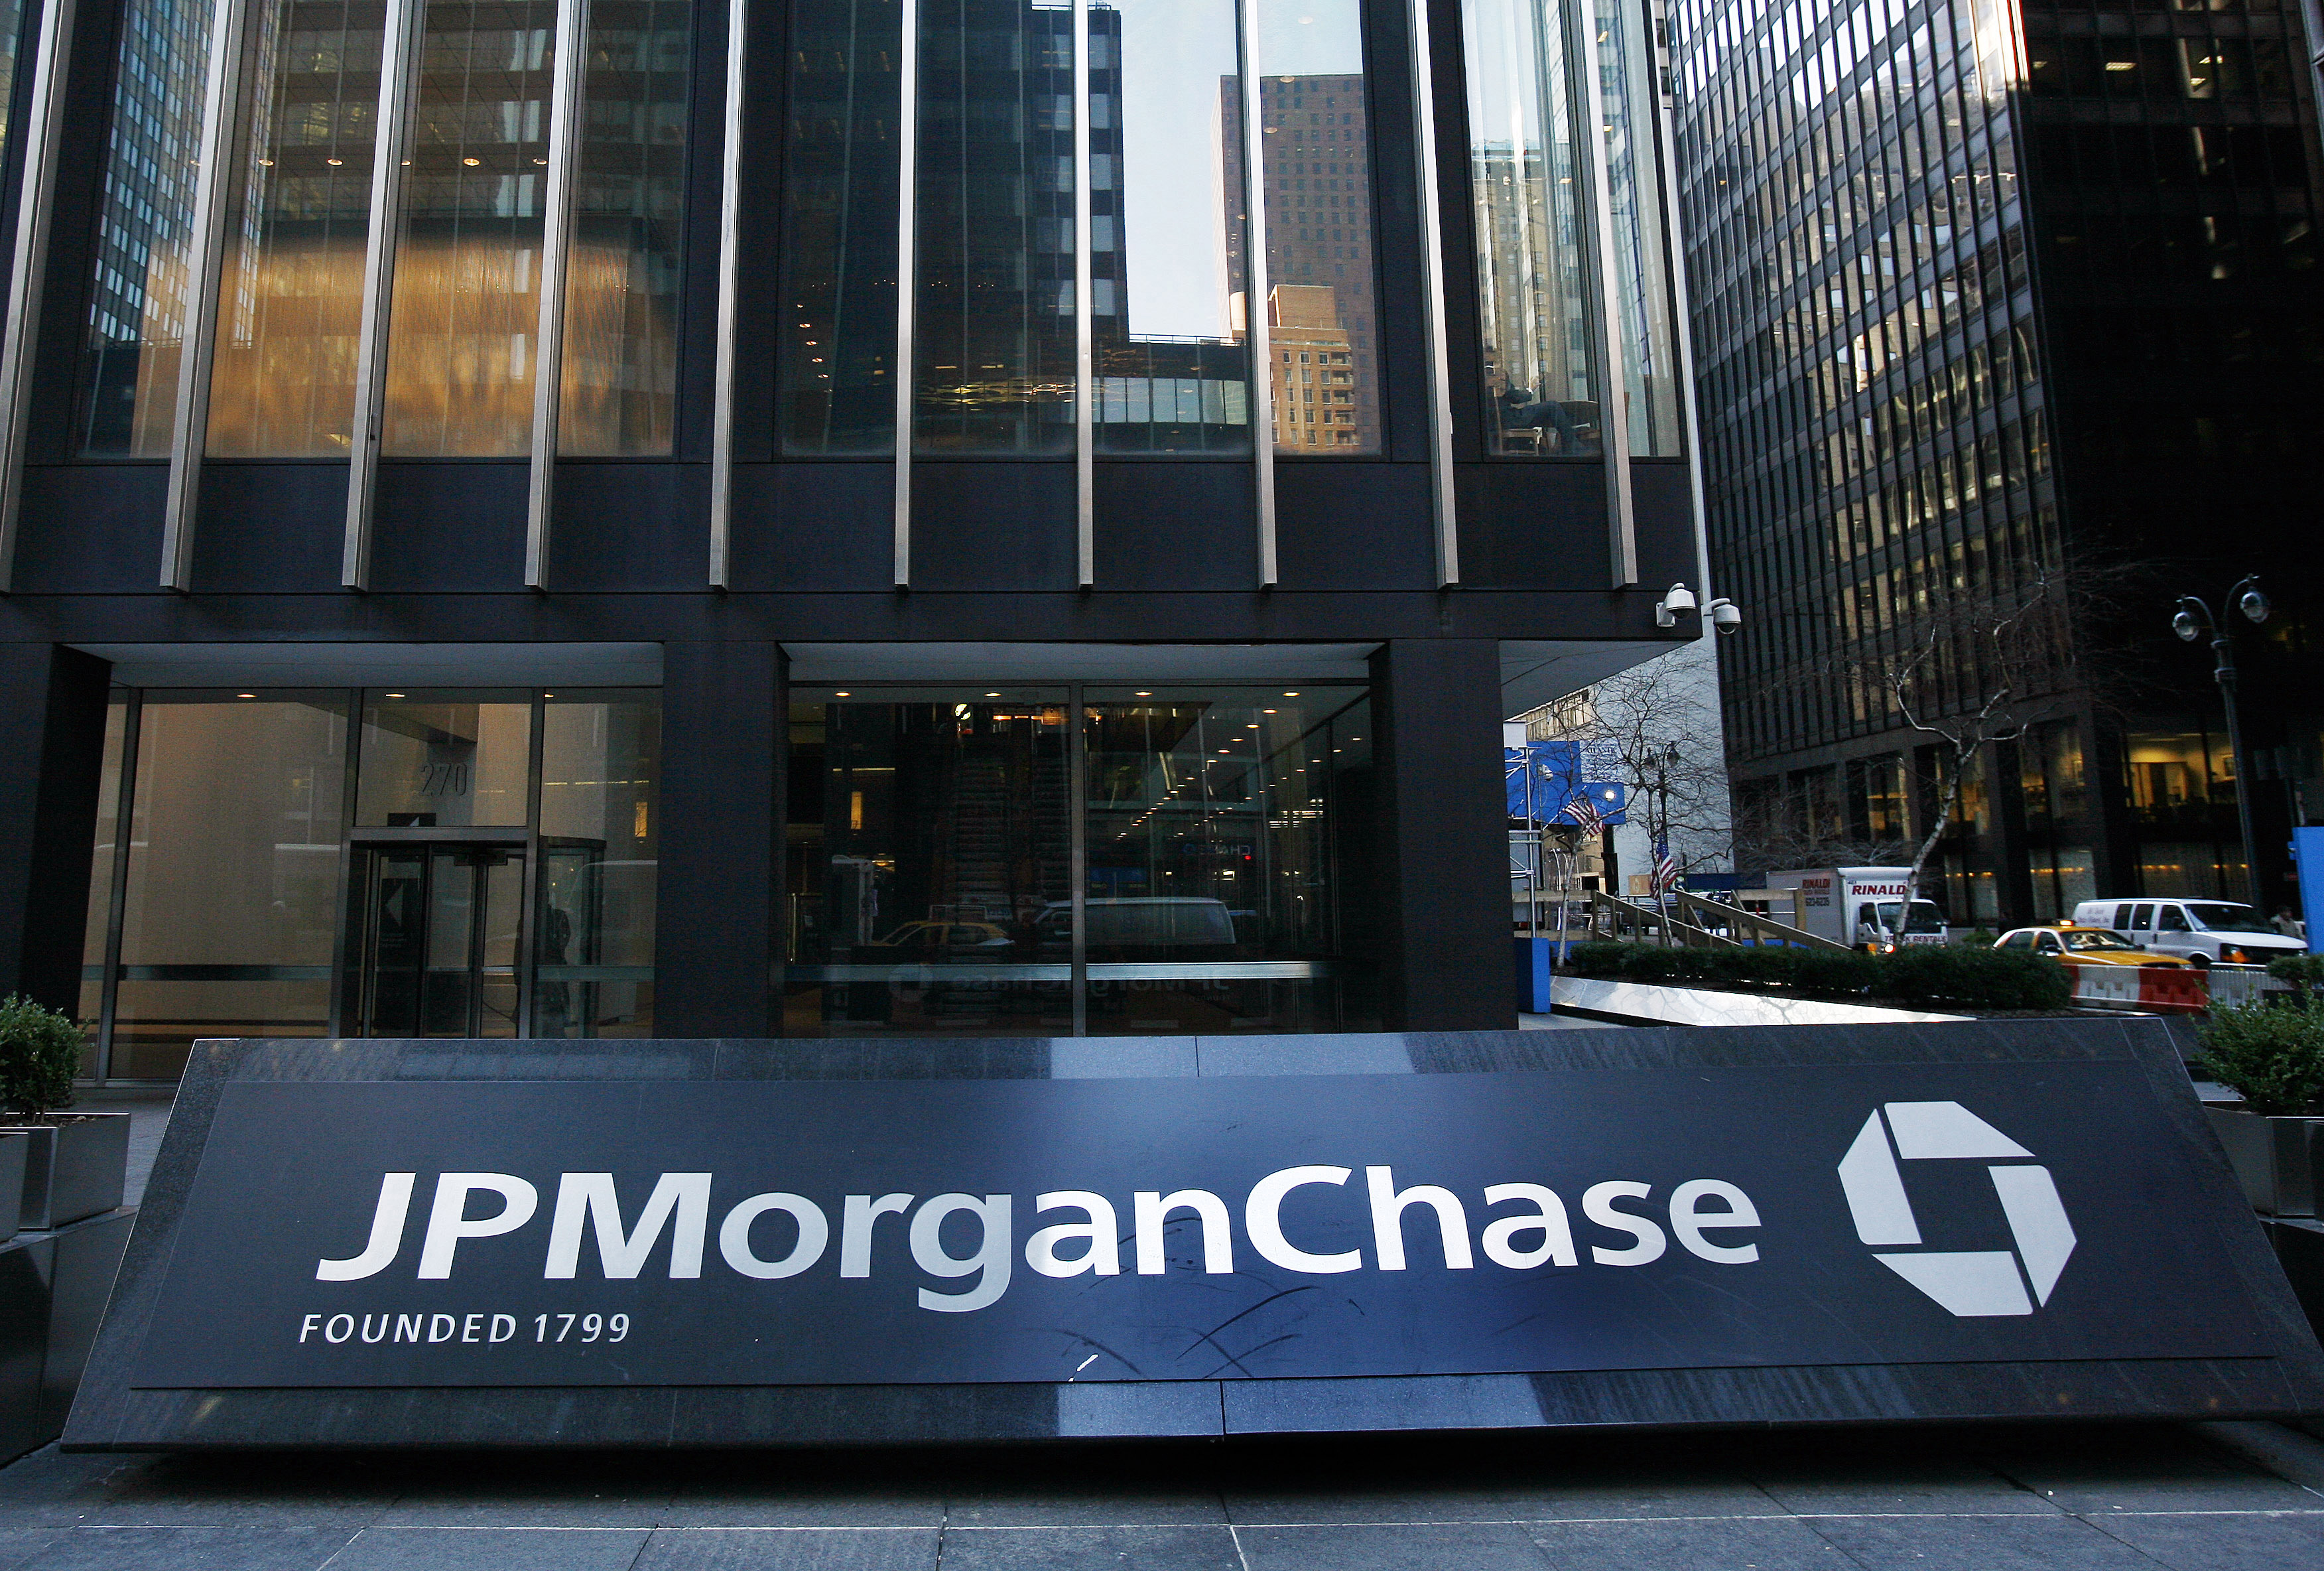 Ny Institute Of Technology >> Chase Bank Online Hack: 4 Things To Do To Protect Your ...